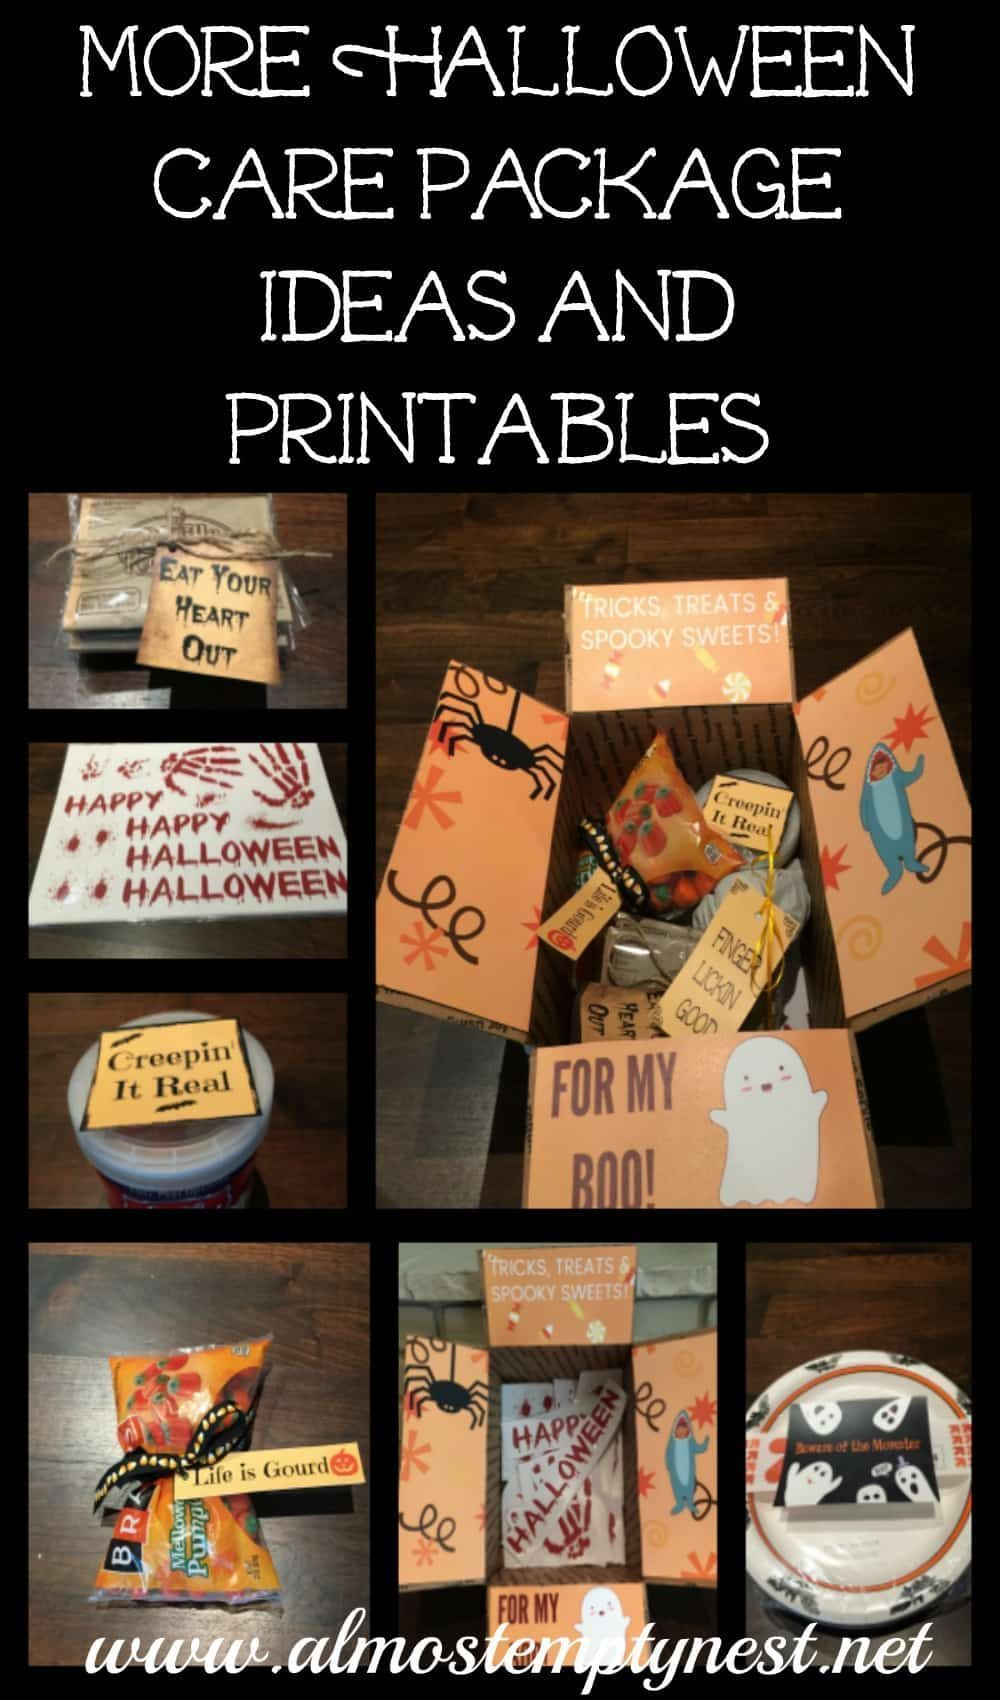 More Halloween Care Package Ideas and Printables #spookybasketideas More Halloween Care Package Ideas and Printables - Almost Empty Nest #spookybasketideasforboyfriend More Halloween Care Package Ideas and Printables #spookybasketideas More Halloween Care Package Ideas and Printables - Almost Empty Nest #spookybasket